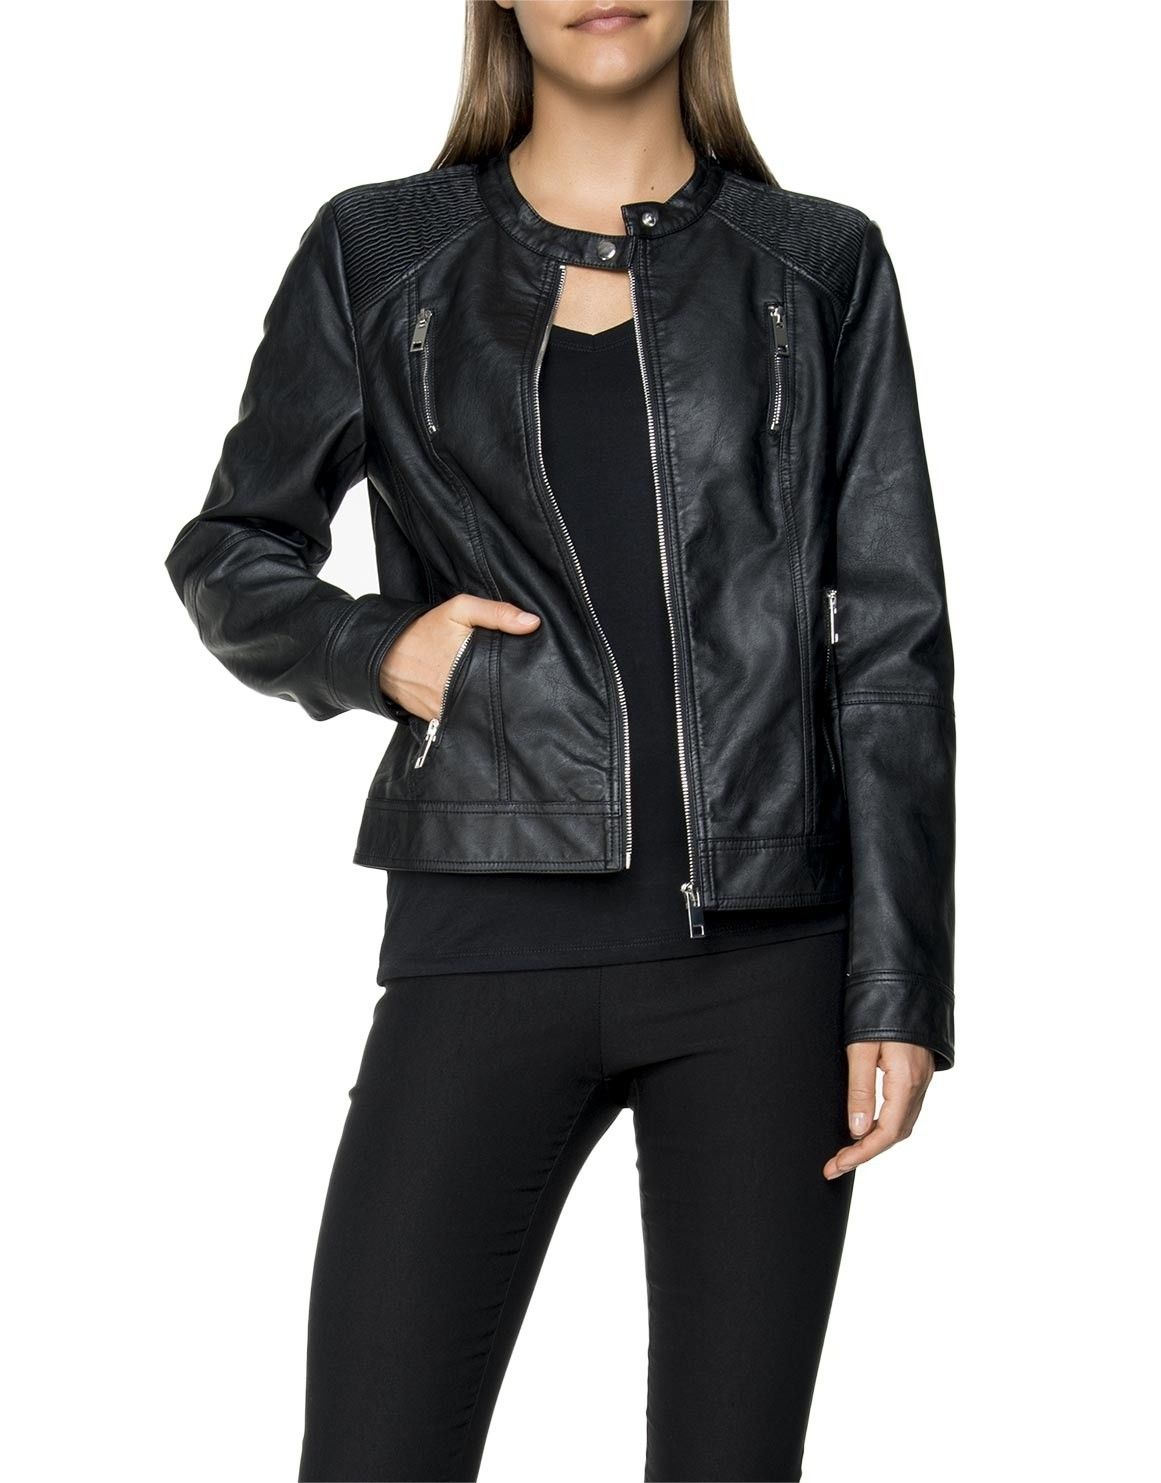 Leather Look Bomber Jacket (With images) Clothes, Bomber